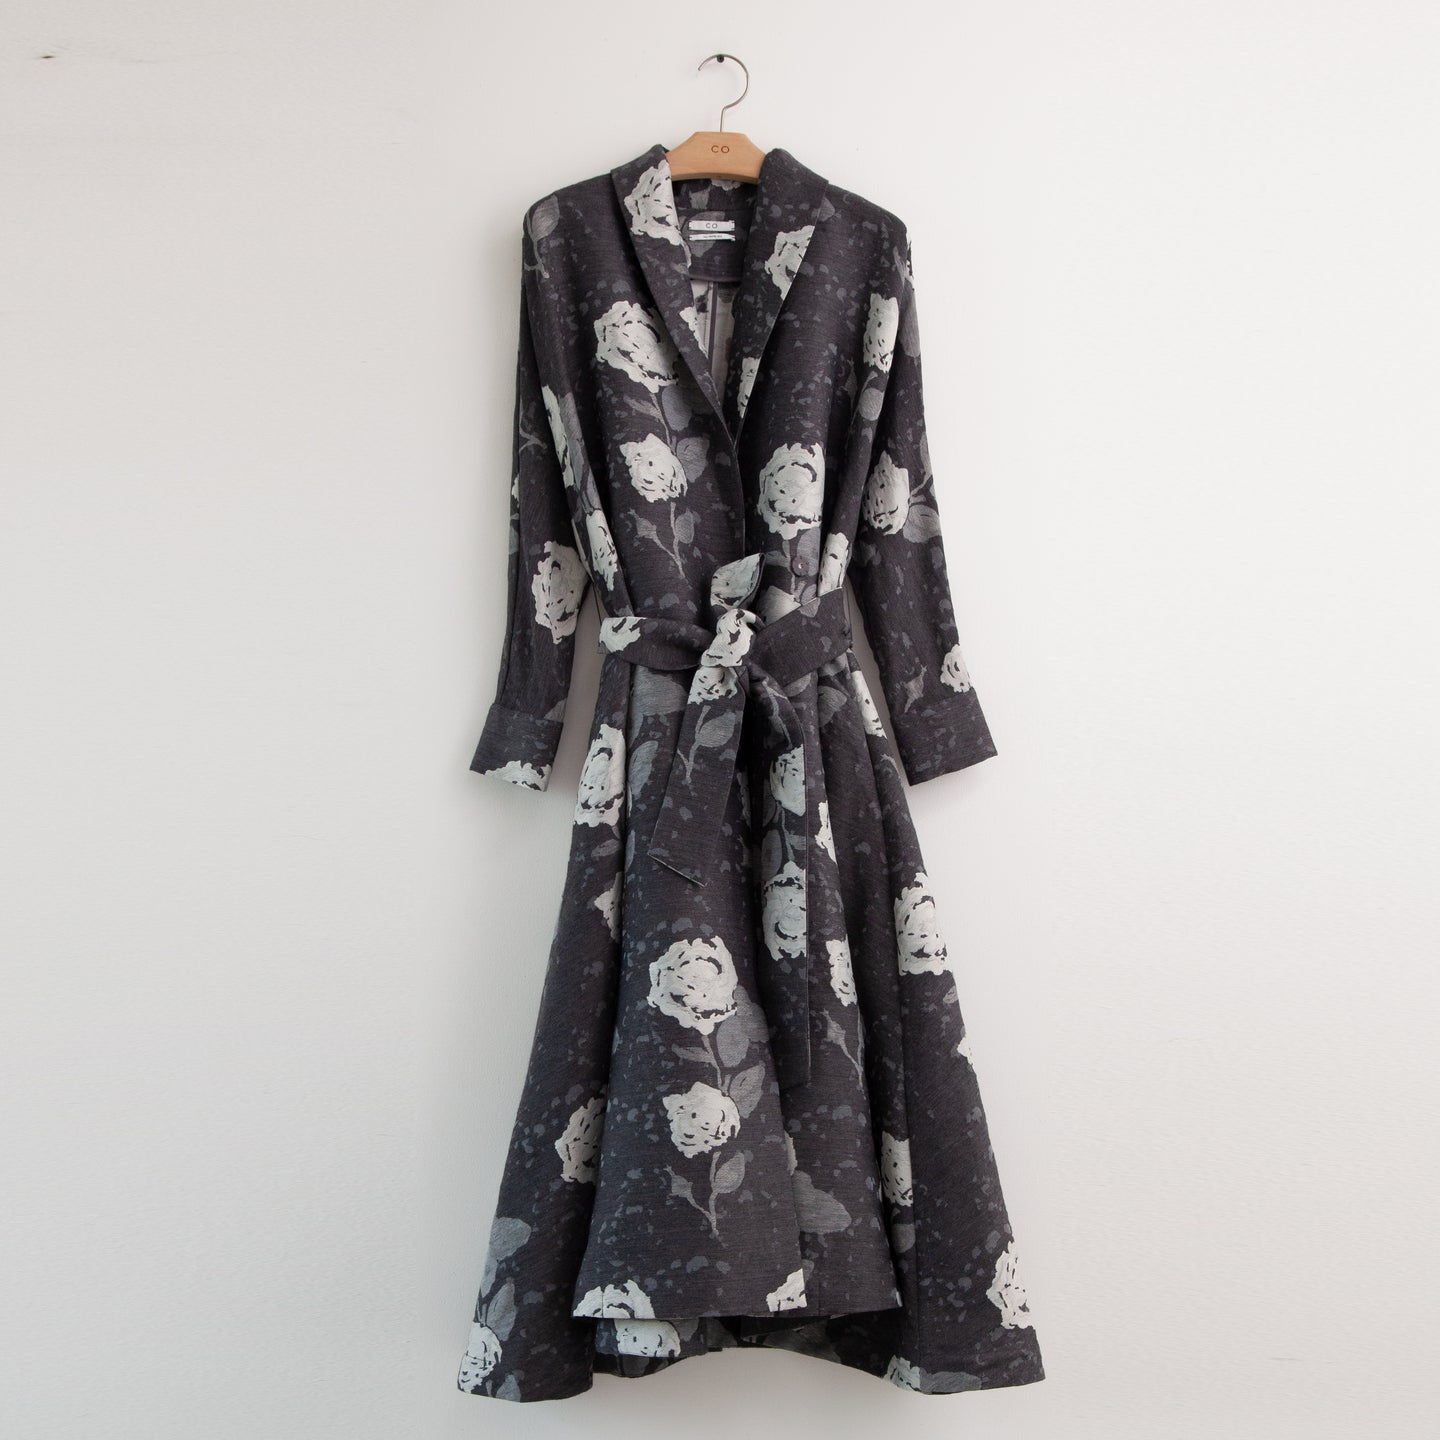 CO - Long sleeve a line belted dress/evening coat in grey floral wool